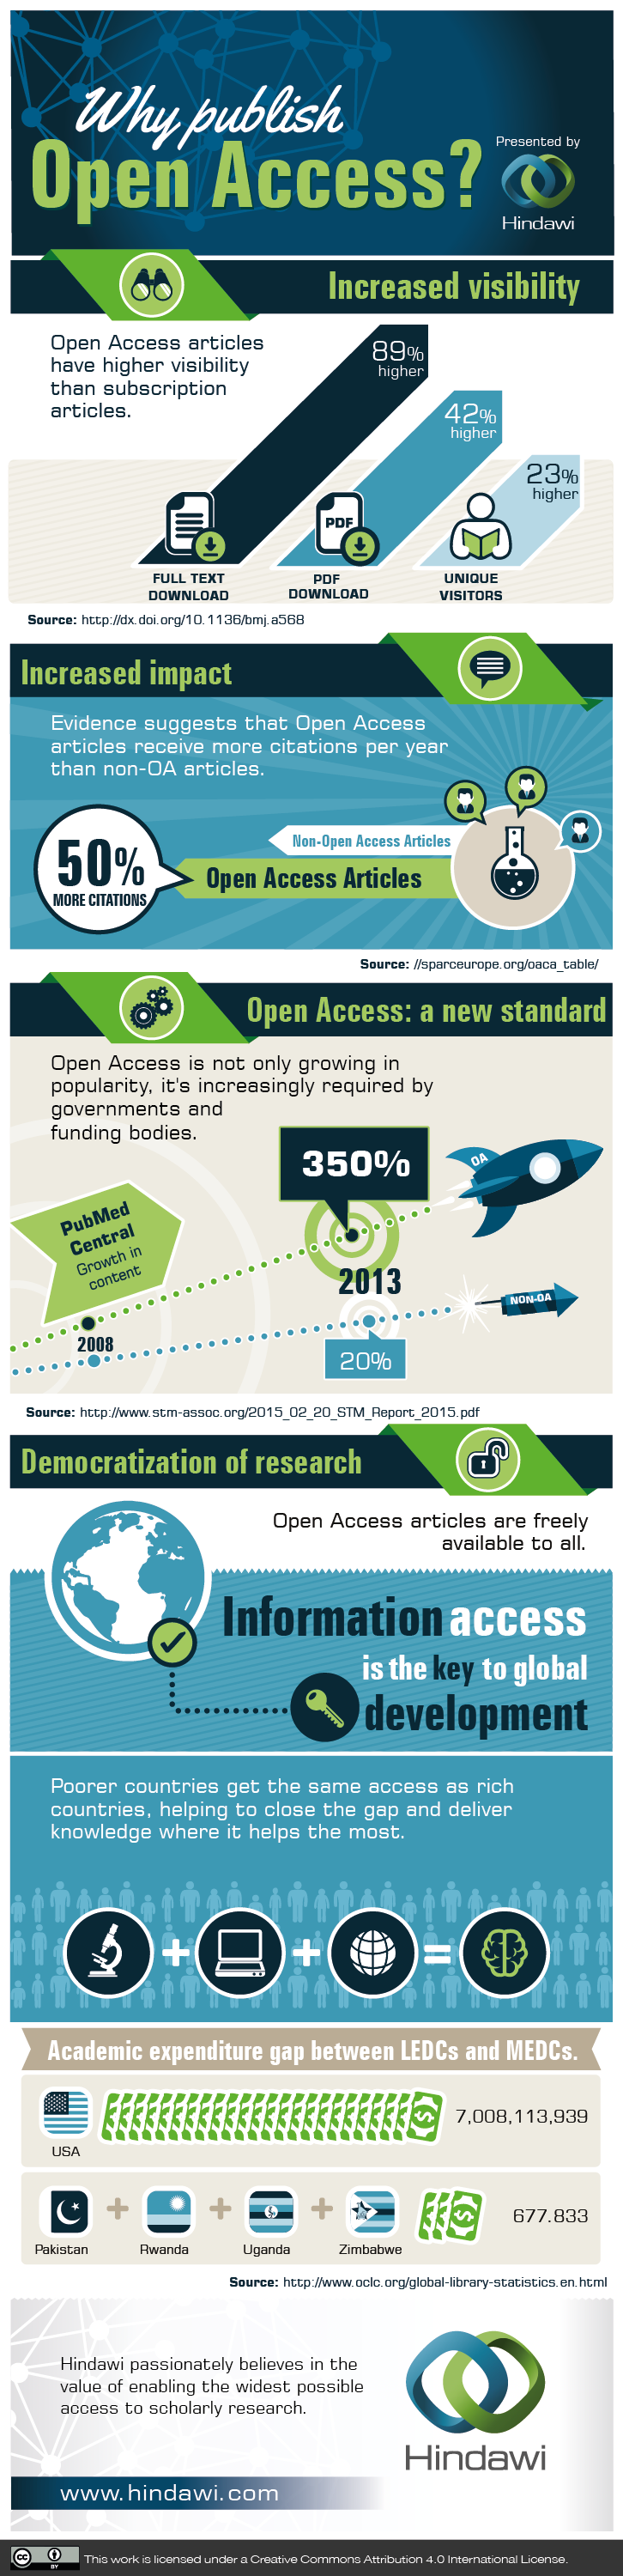 Why should researchers publish open access?